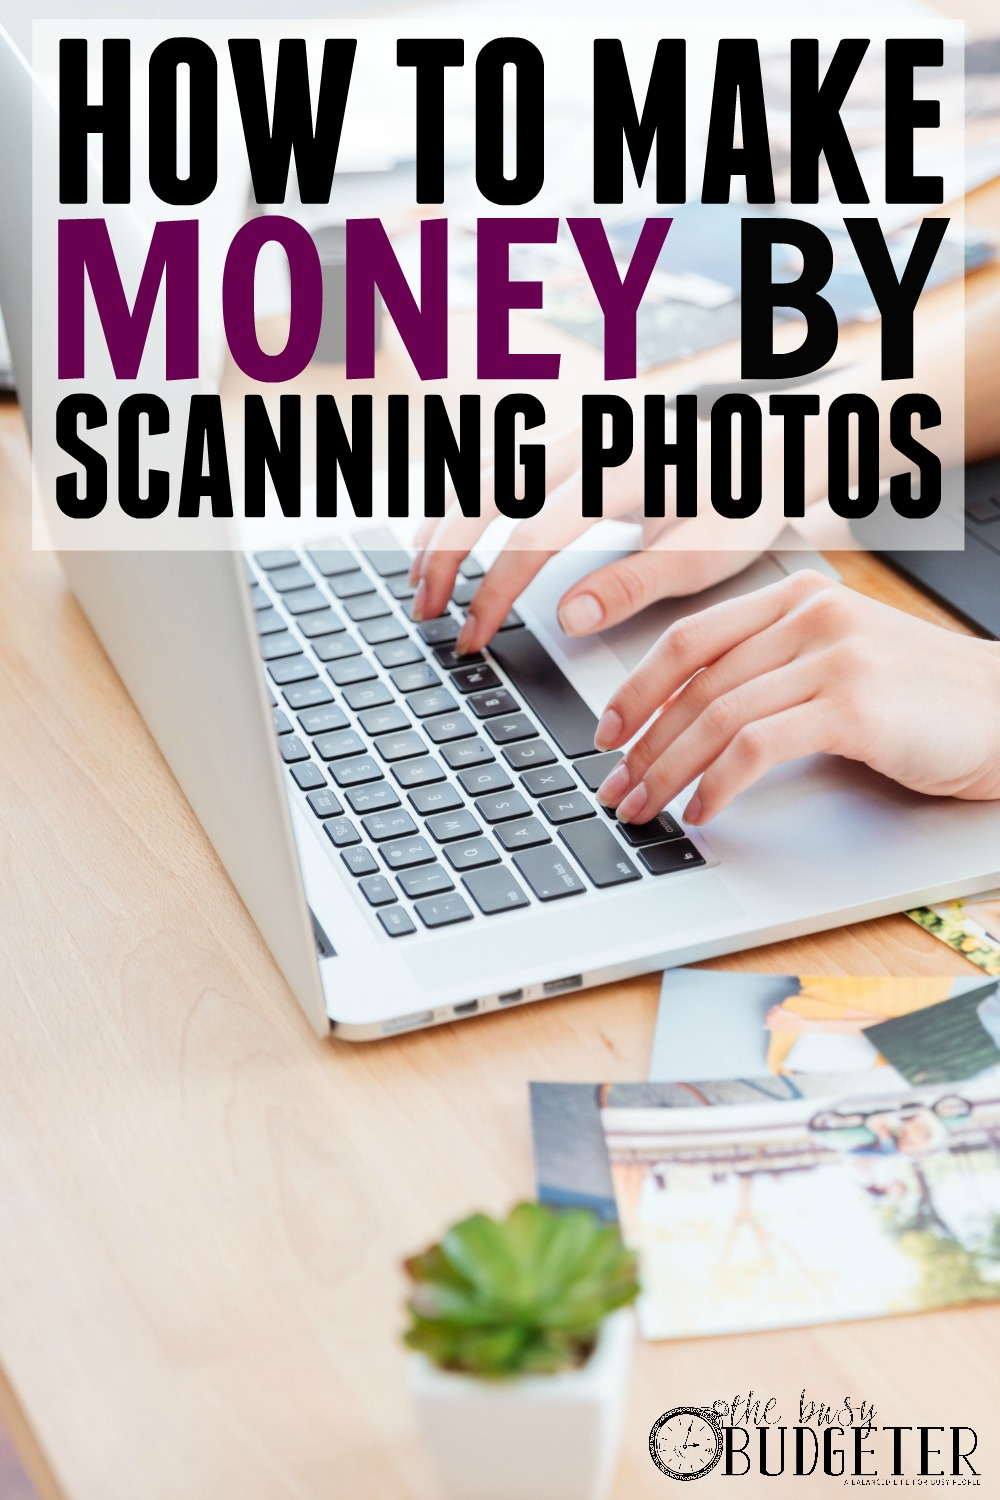 How to make money by scanning photographs. This is so freaking smart! And true! Haha, I read it because I want to hire someone to scan in our family photos, I have boatloads of them and have no idea what to do with them! I would totally pay someone to do this for me! And what a great way to make some extra money as a stay at home mom! Easy ways to make money from home always get pinned over here. 😄